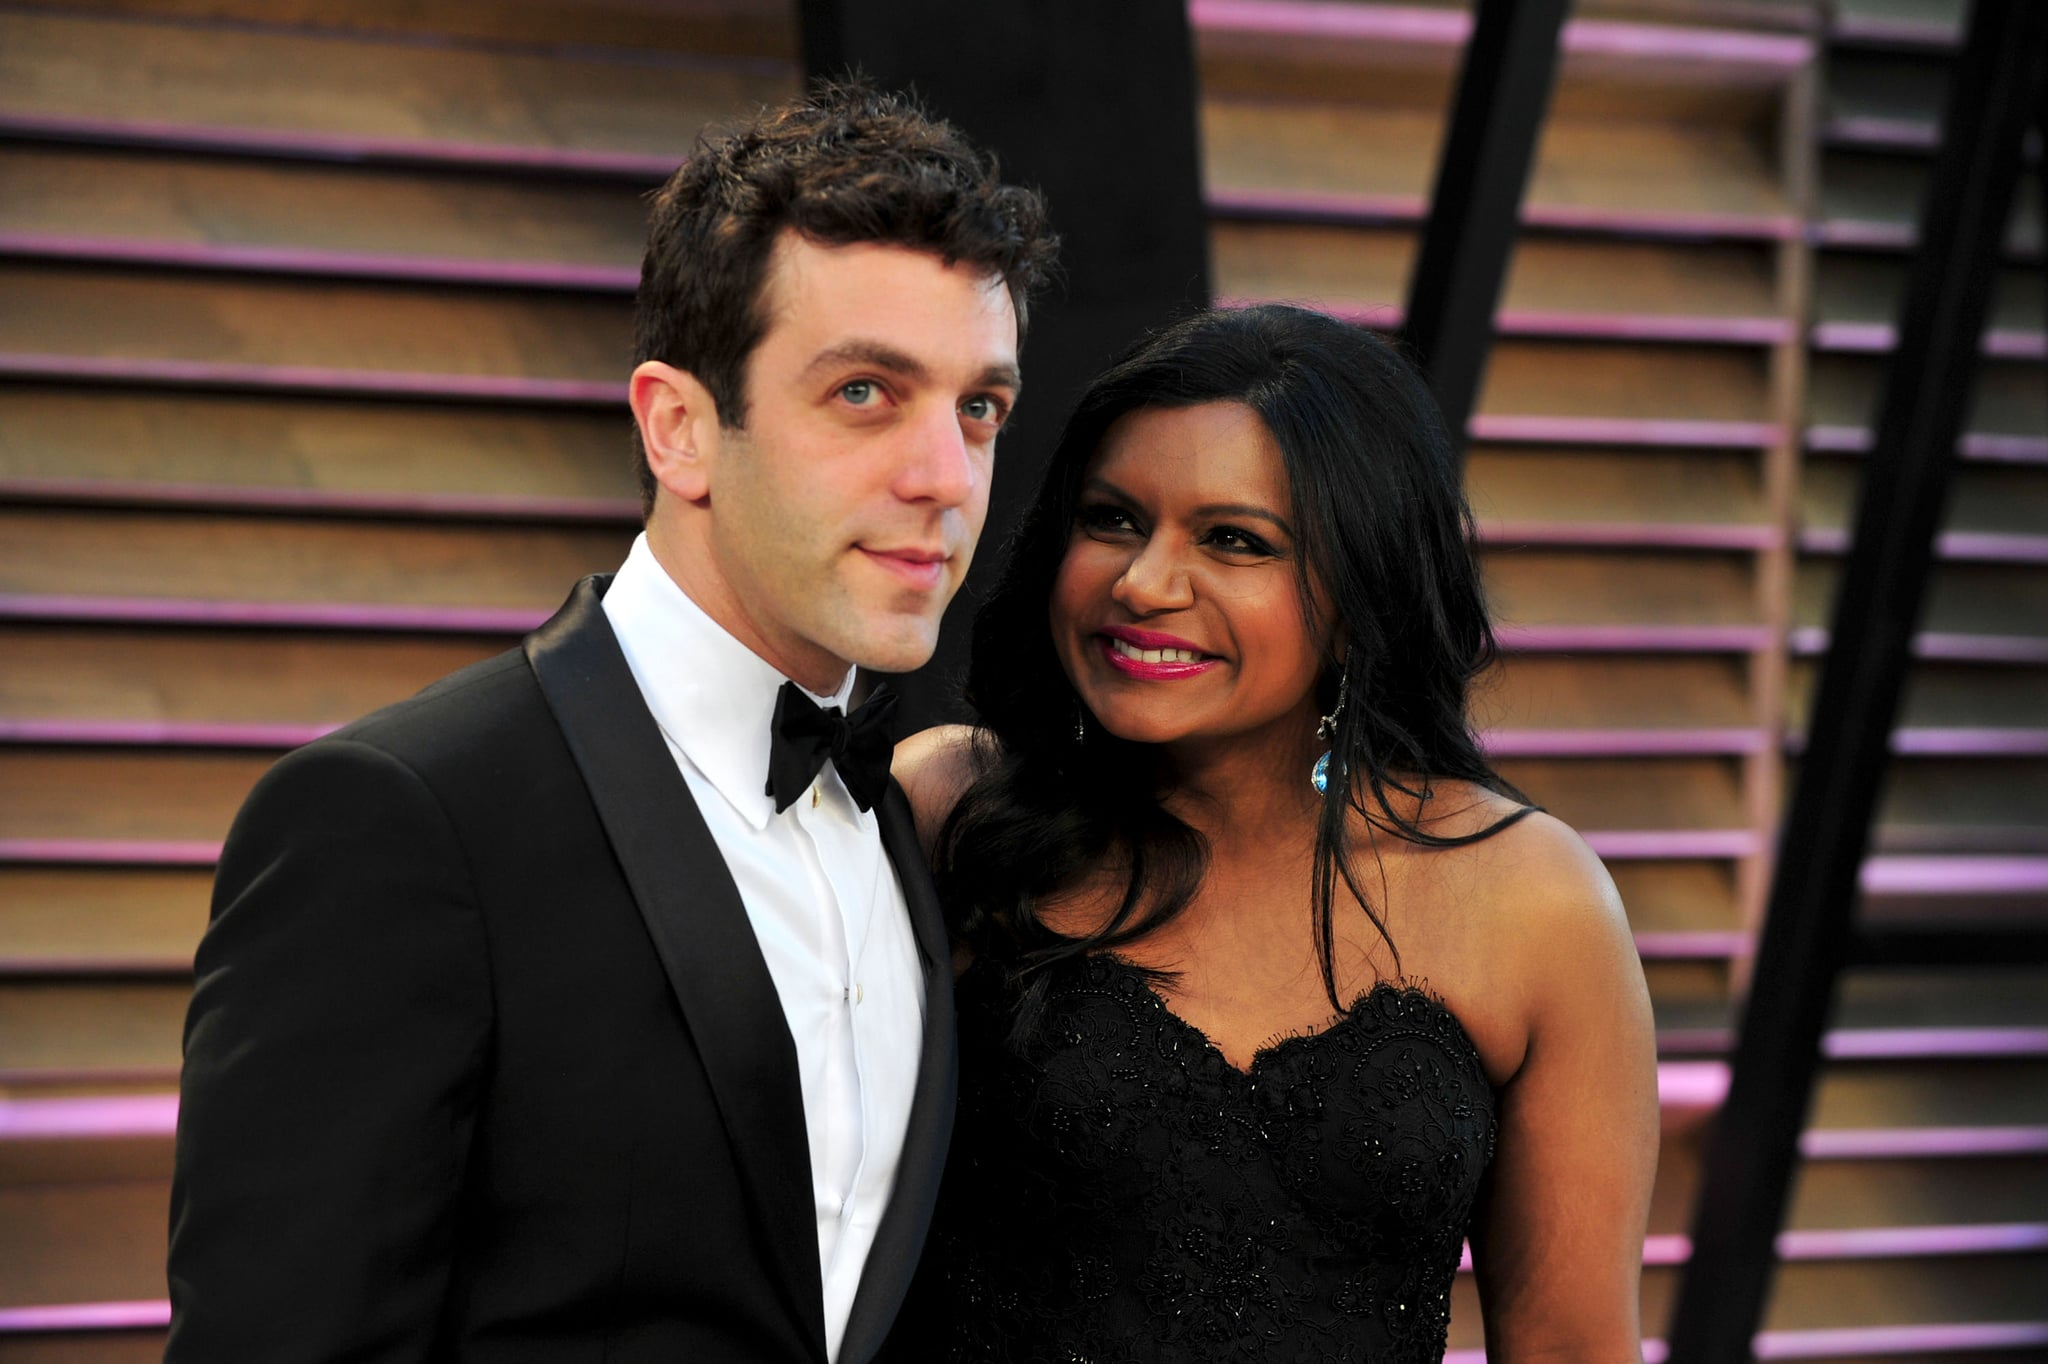 Mindy Talking About Their Breakup On The Howard Stern Show He S A Mindy Kaling And Bj Novak Quotes About Each Other Popsugar Celebrity Uk Photo 3